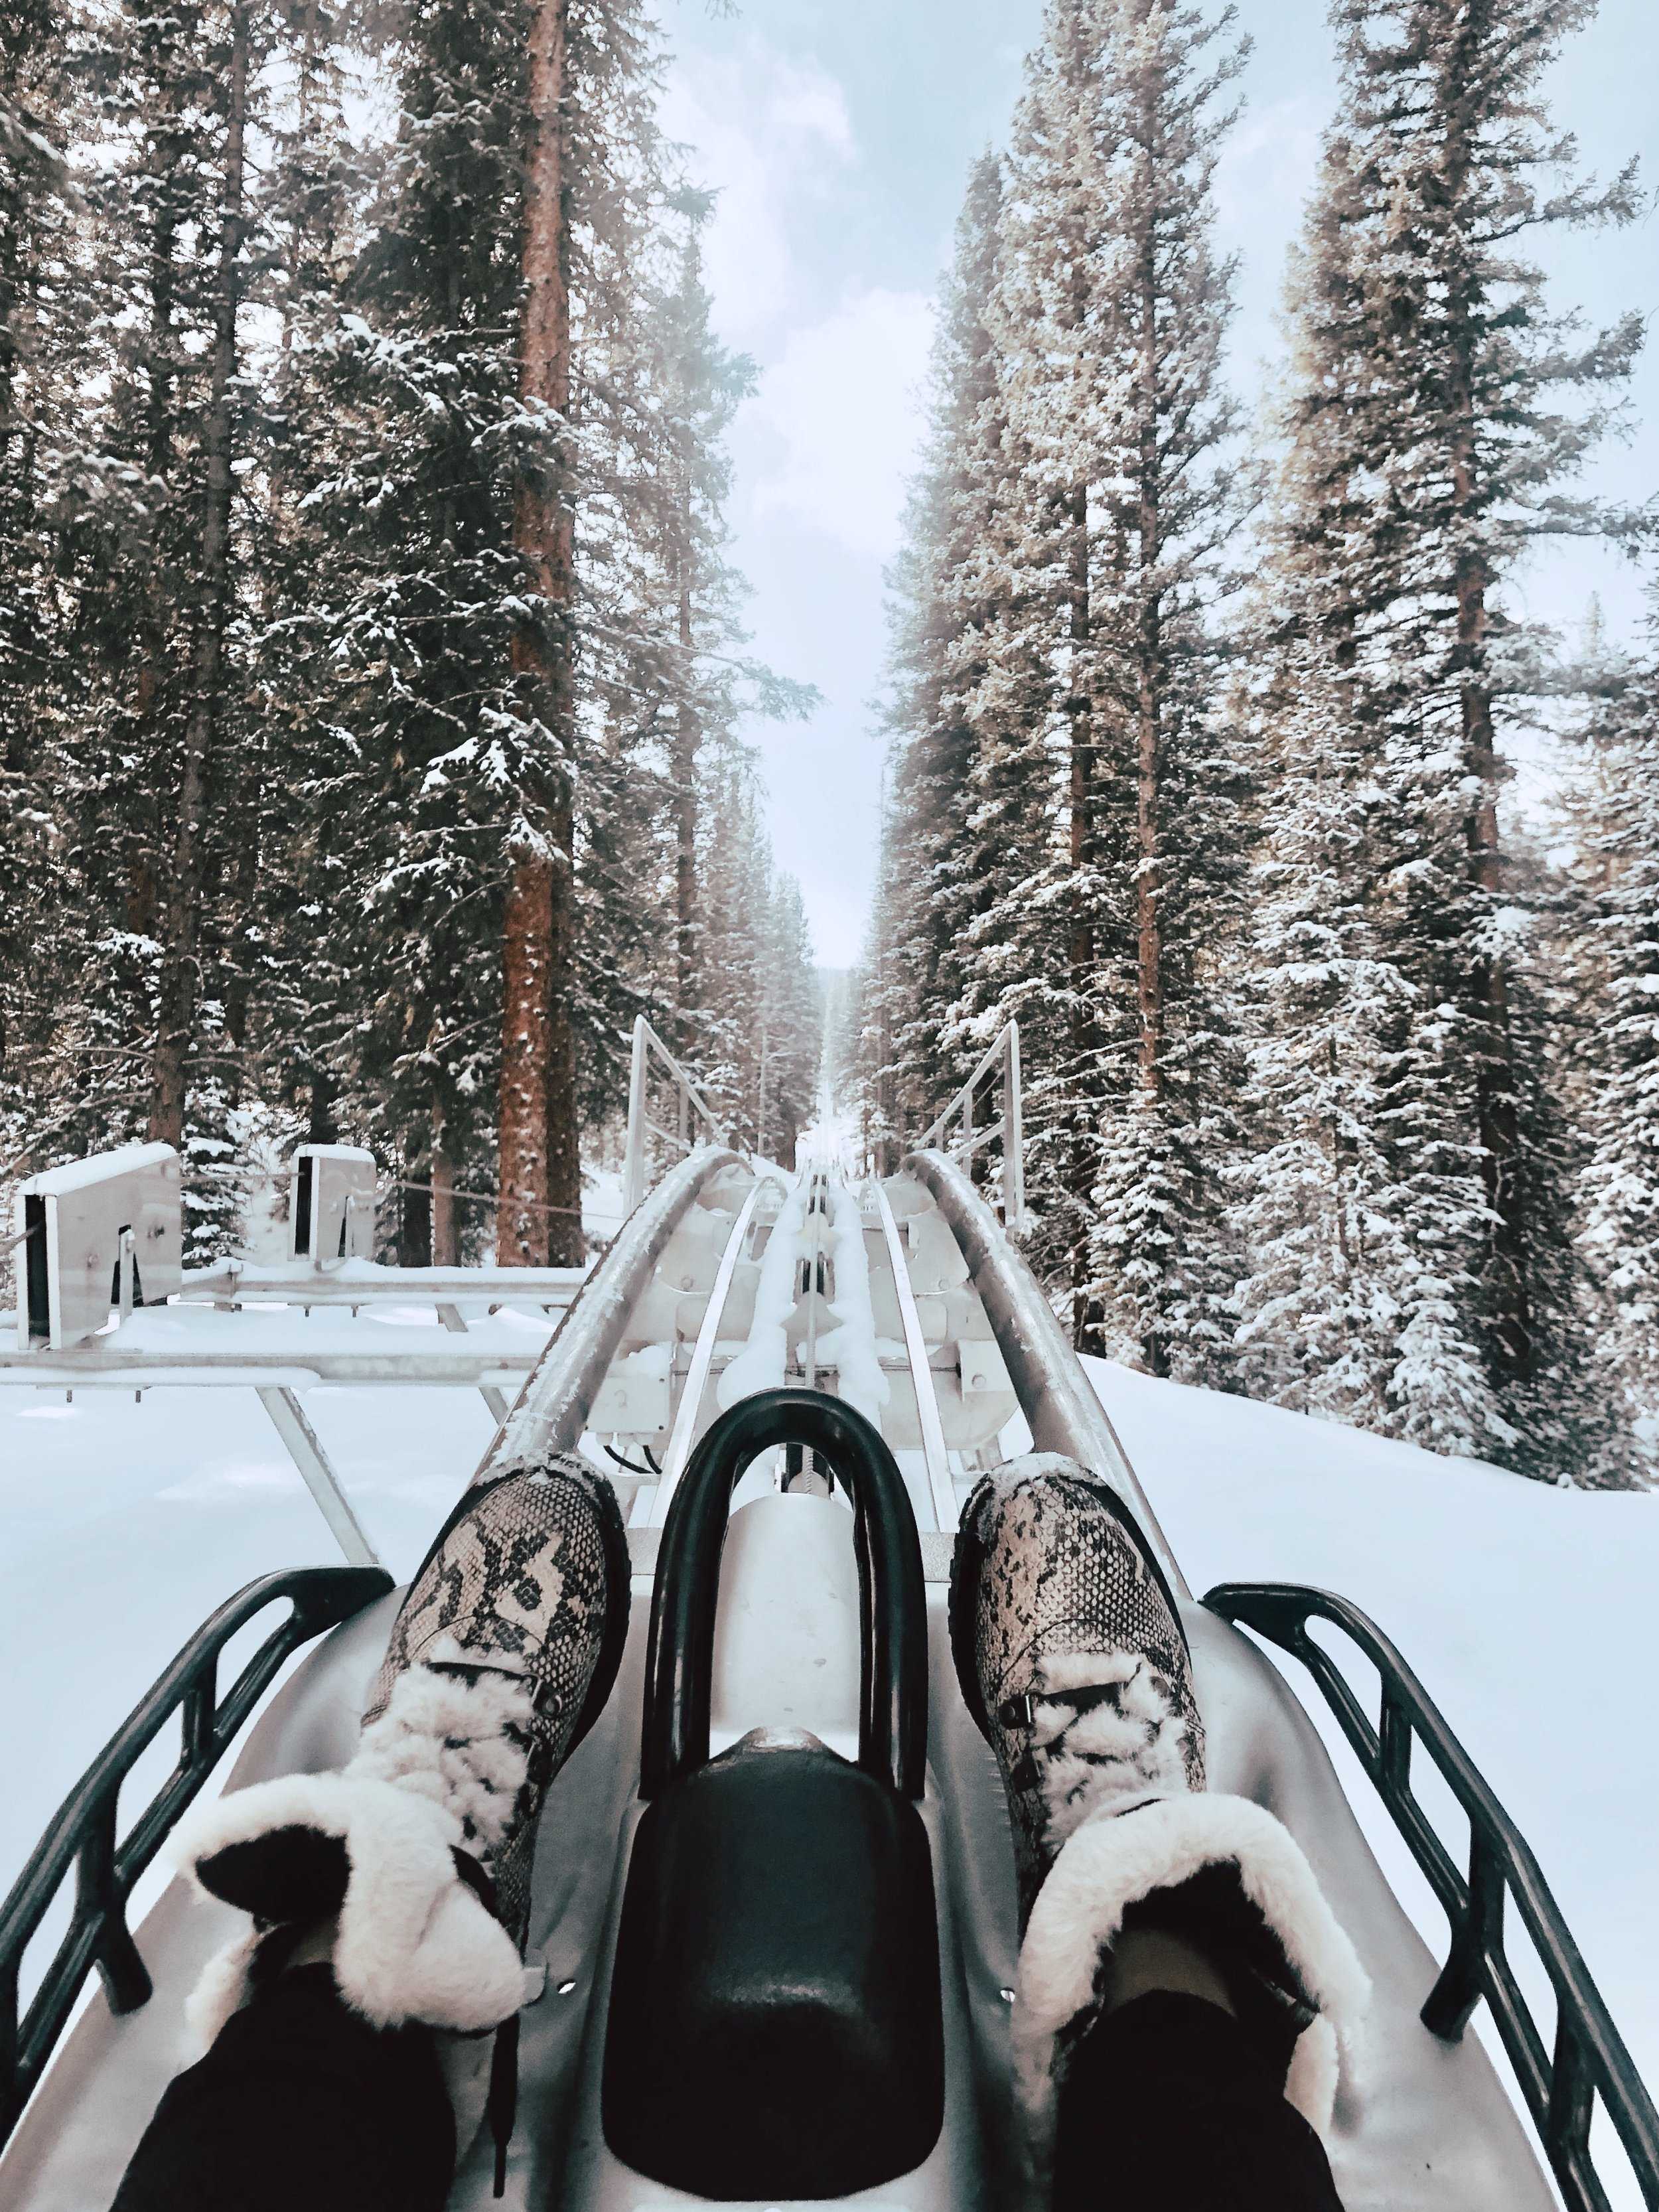 ALPINE COASTER - Snowmass is full of sights to see and endless activities for all ages. We absolutely loved the Gravity driven Alpine coaster, where you can control your own speed while riding through stunning Alpine trees.